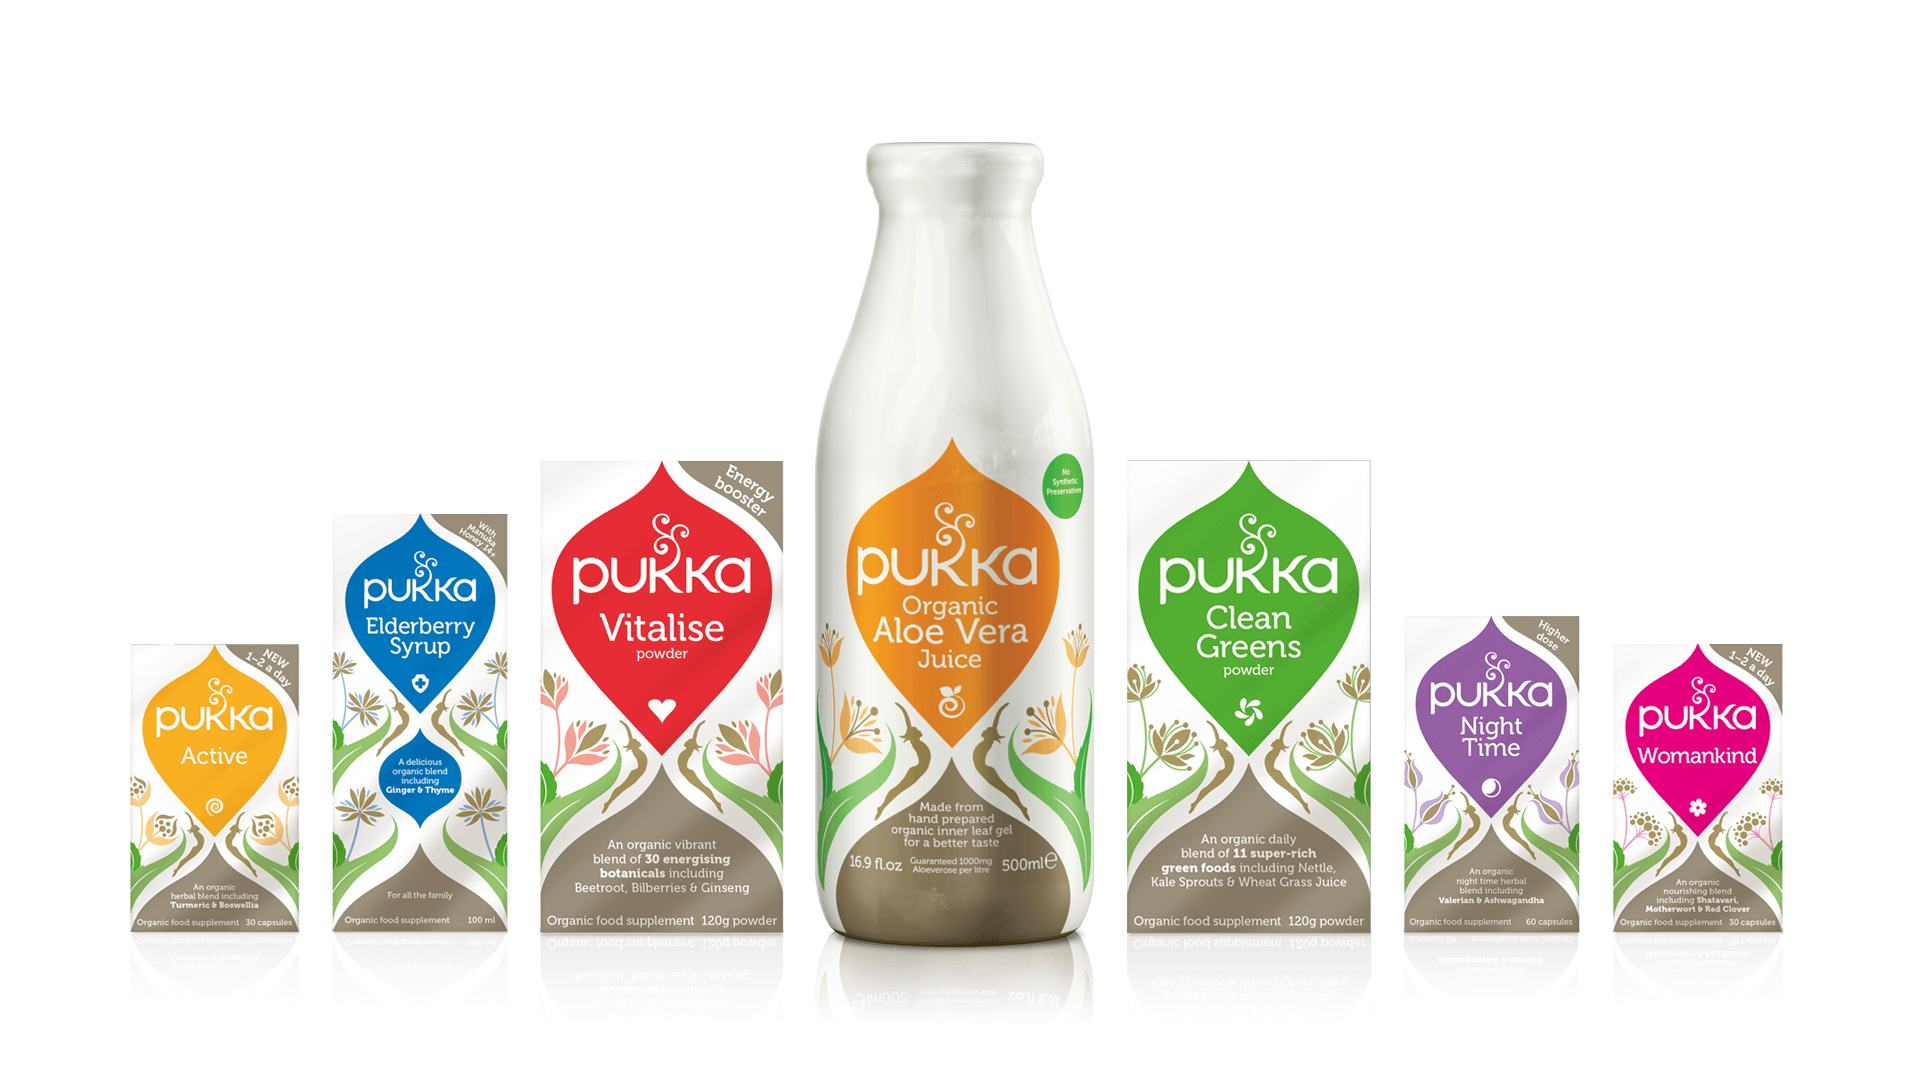 Pukka range of herbal supplements designed and illustrated by Mutiny Agency.  Beautiful packaging design and illustrations by Mutiny Agency for Pukka.